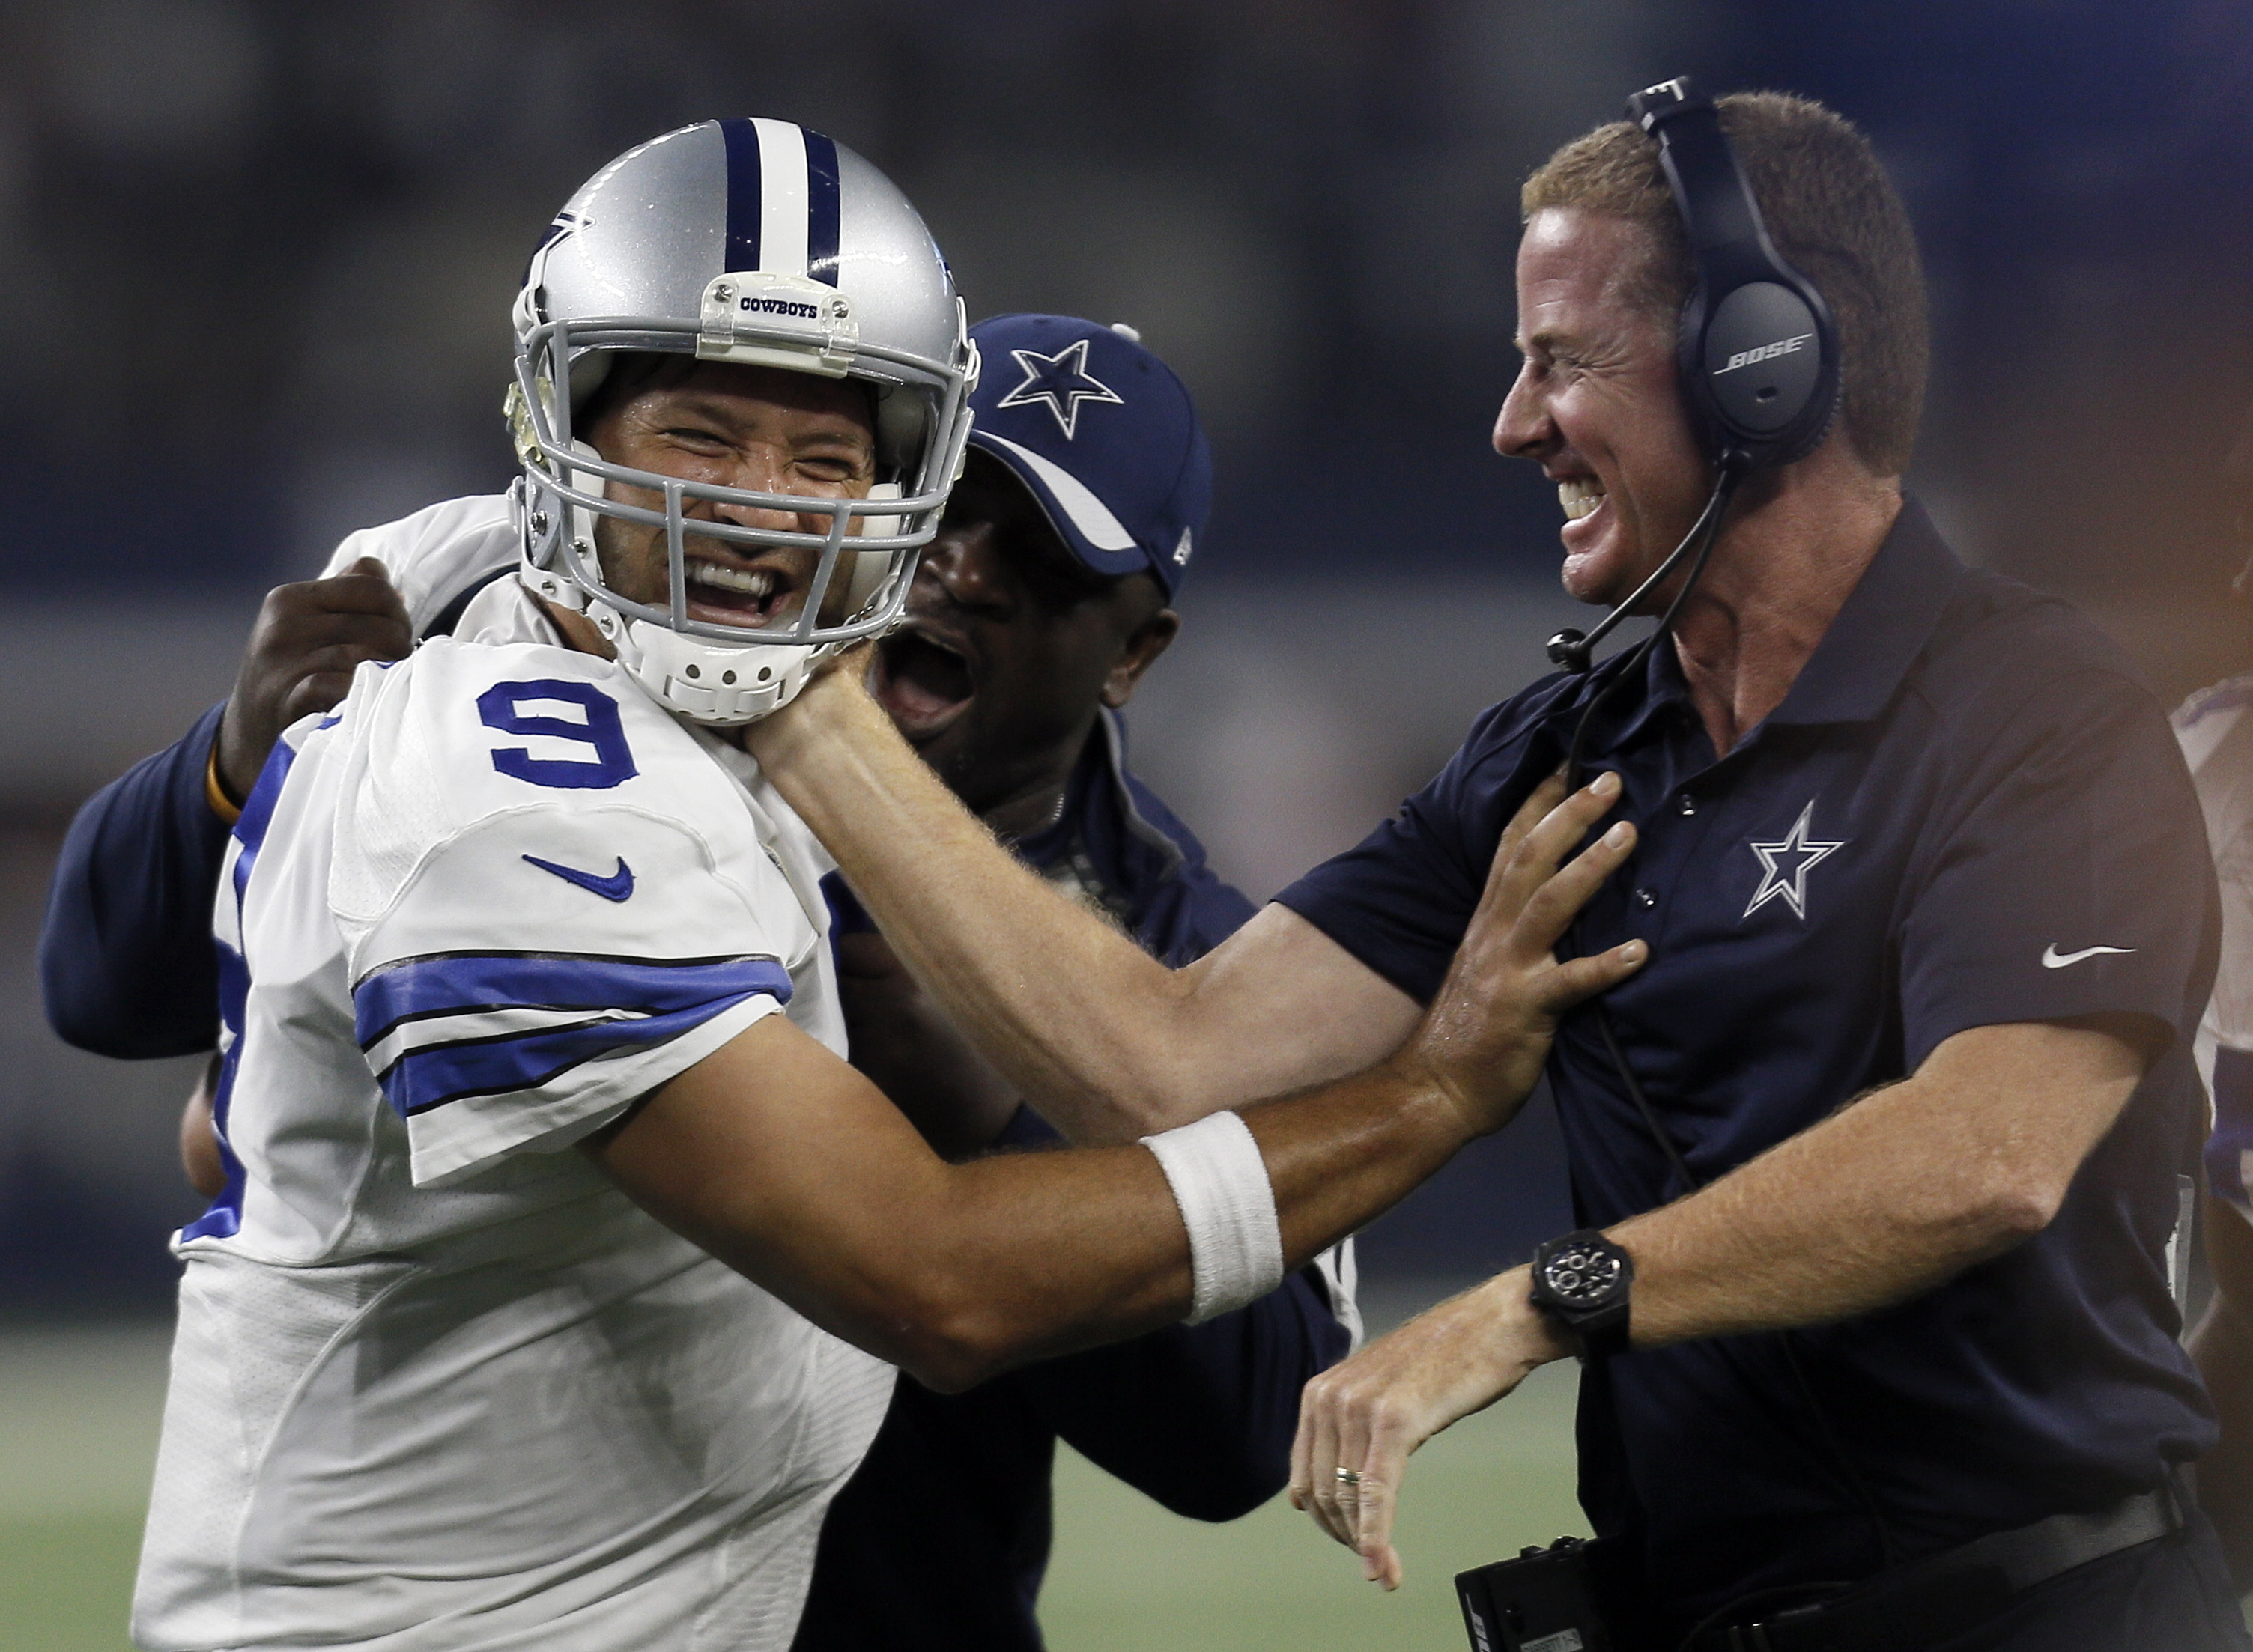 Dallas Cowboys quarterback Tony Romo and head coach Jason Garrett celebrate a last minute touchdown pass to tight end Jason Witten (82) to win against the New York Giants during the second half of an NFL football game Sunday, Sept. 13, 2015, in Arlington,